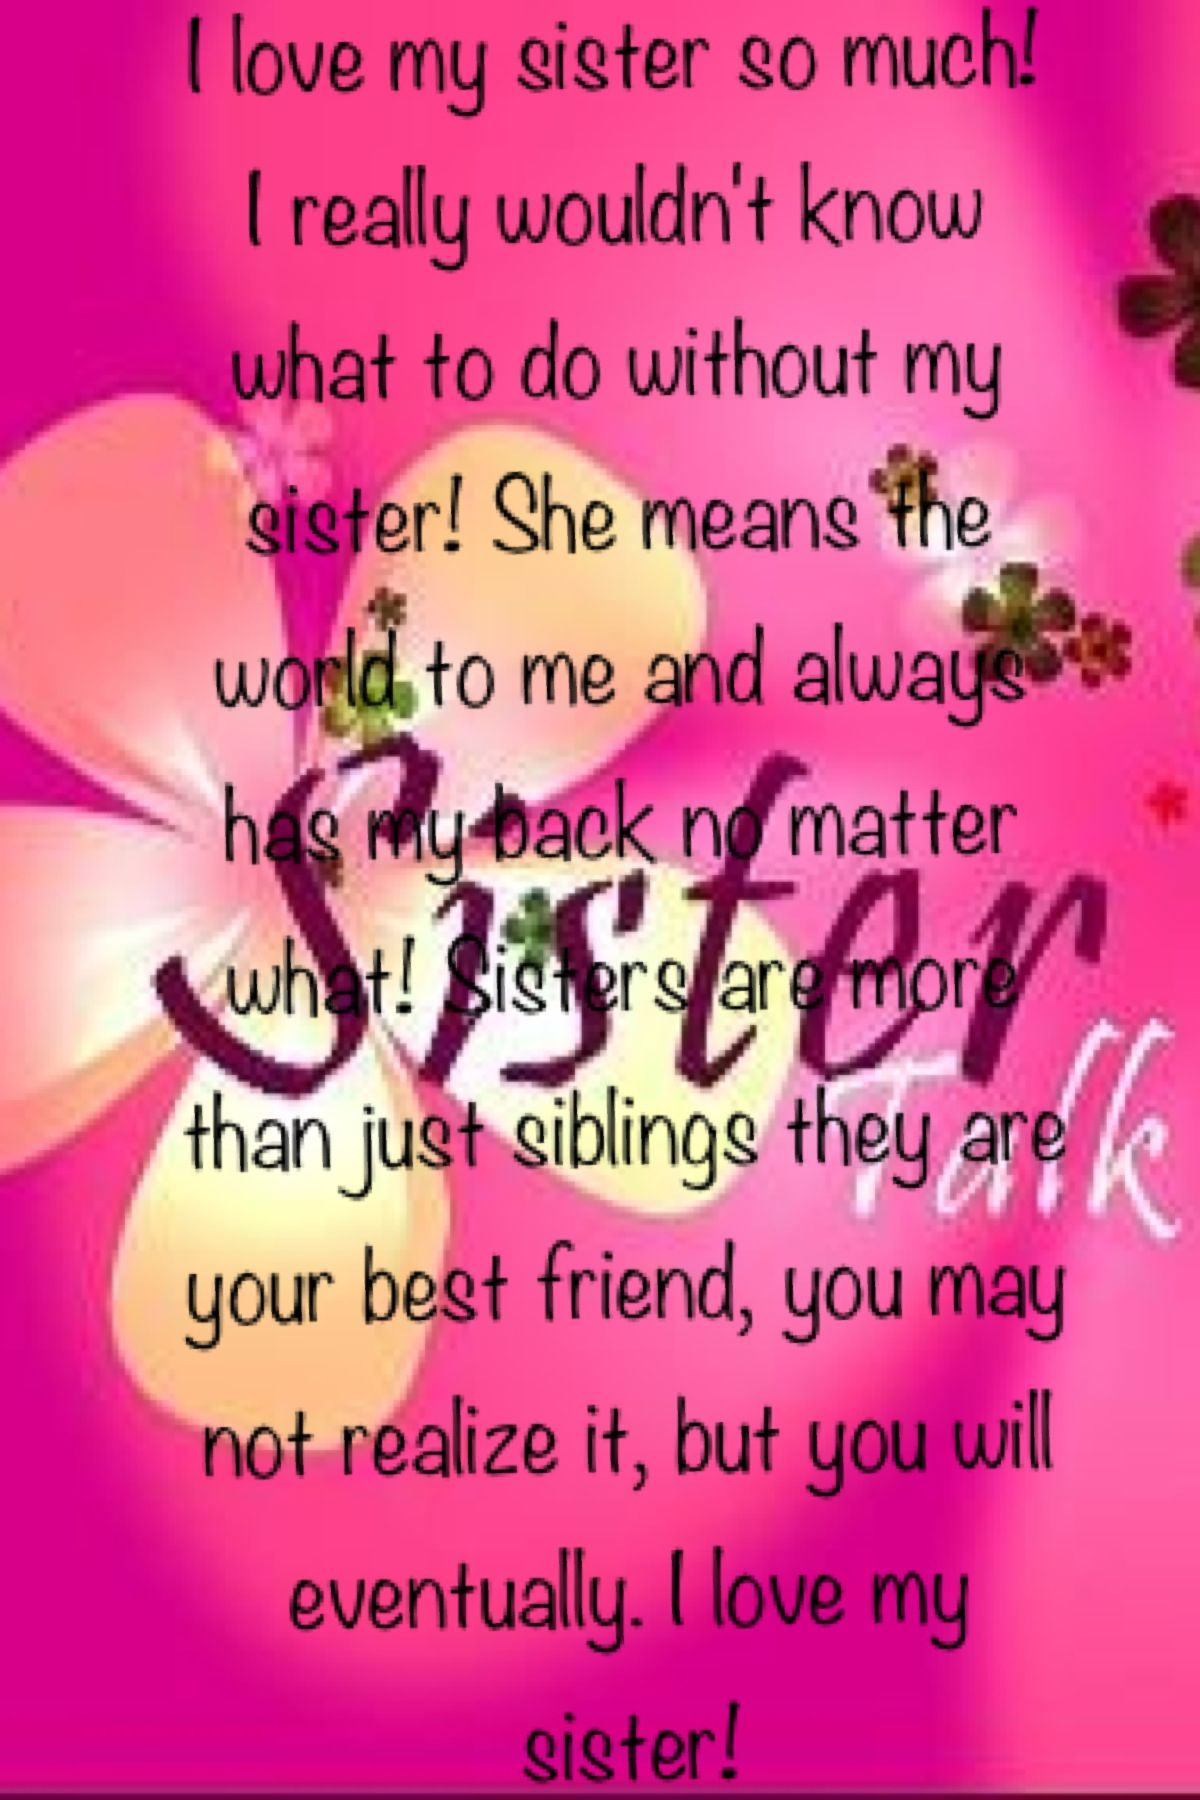 Love You Sister Quotes I Love My Sister So Much Girlfriends & Sister  Pinterest